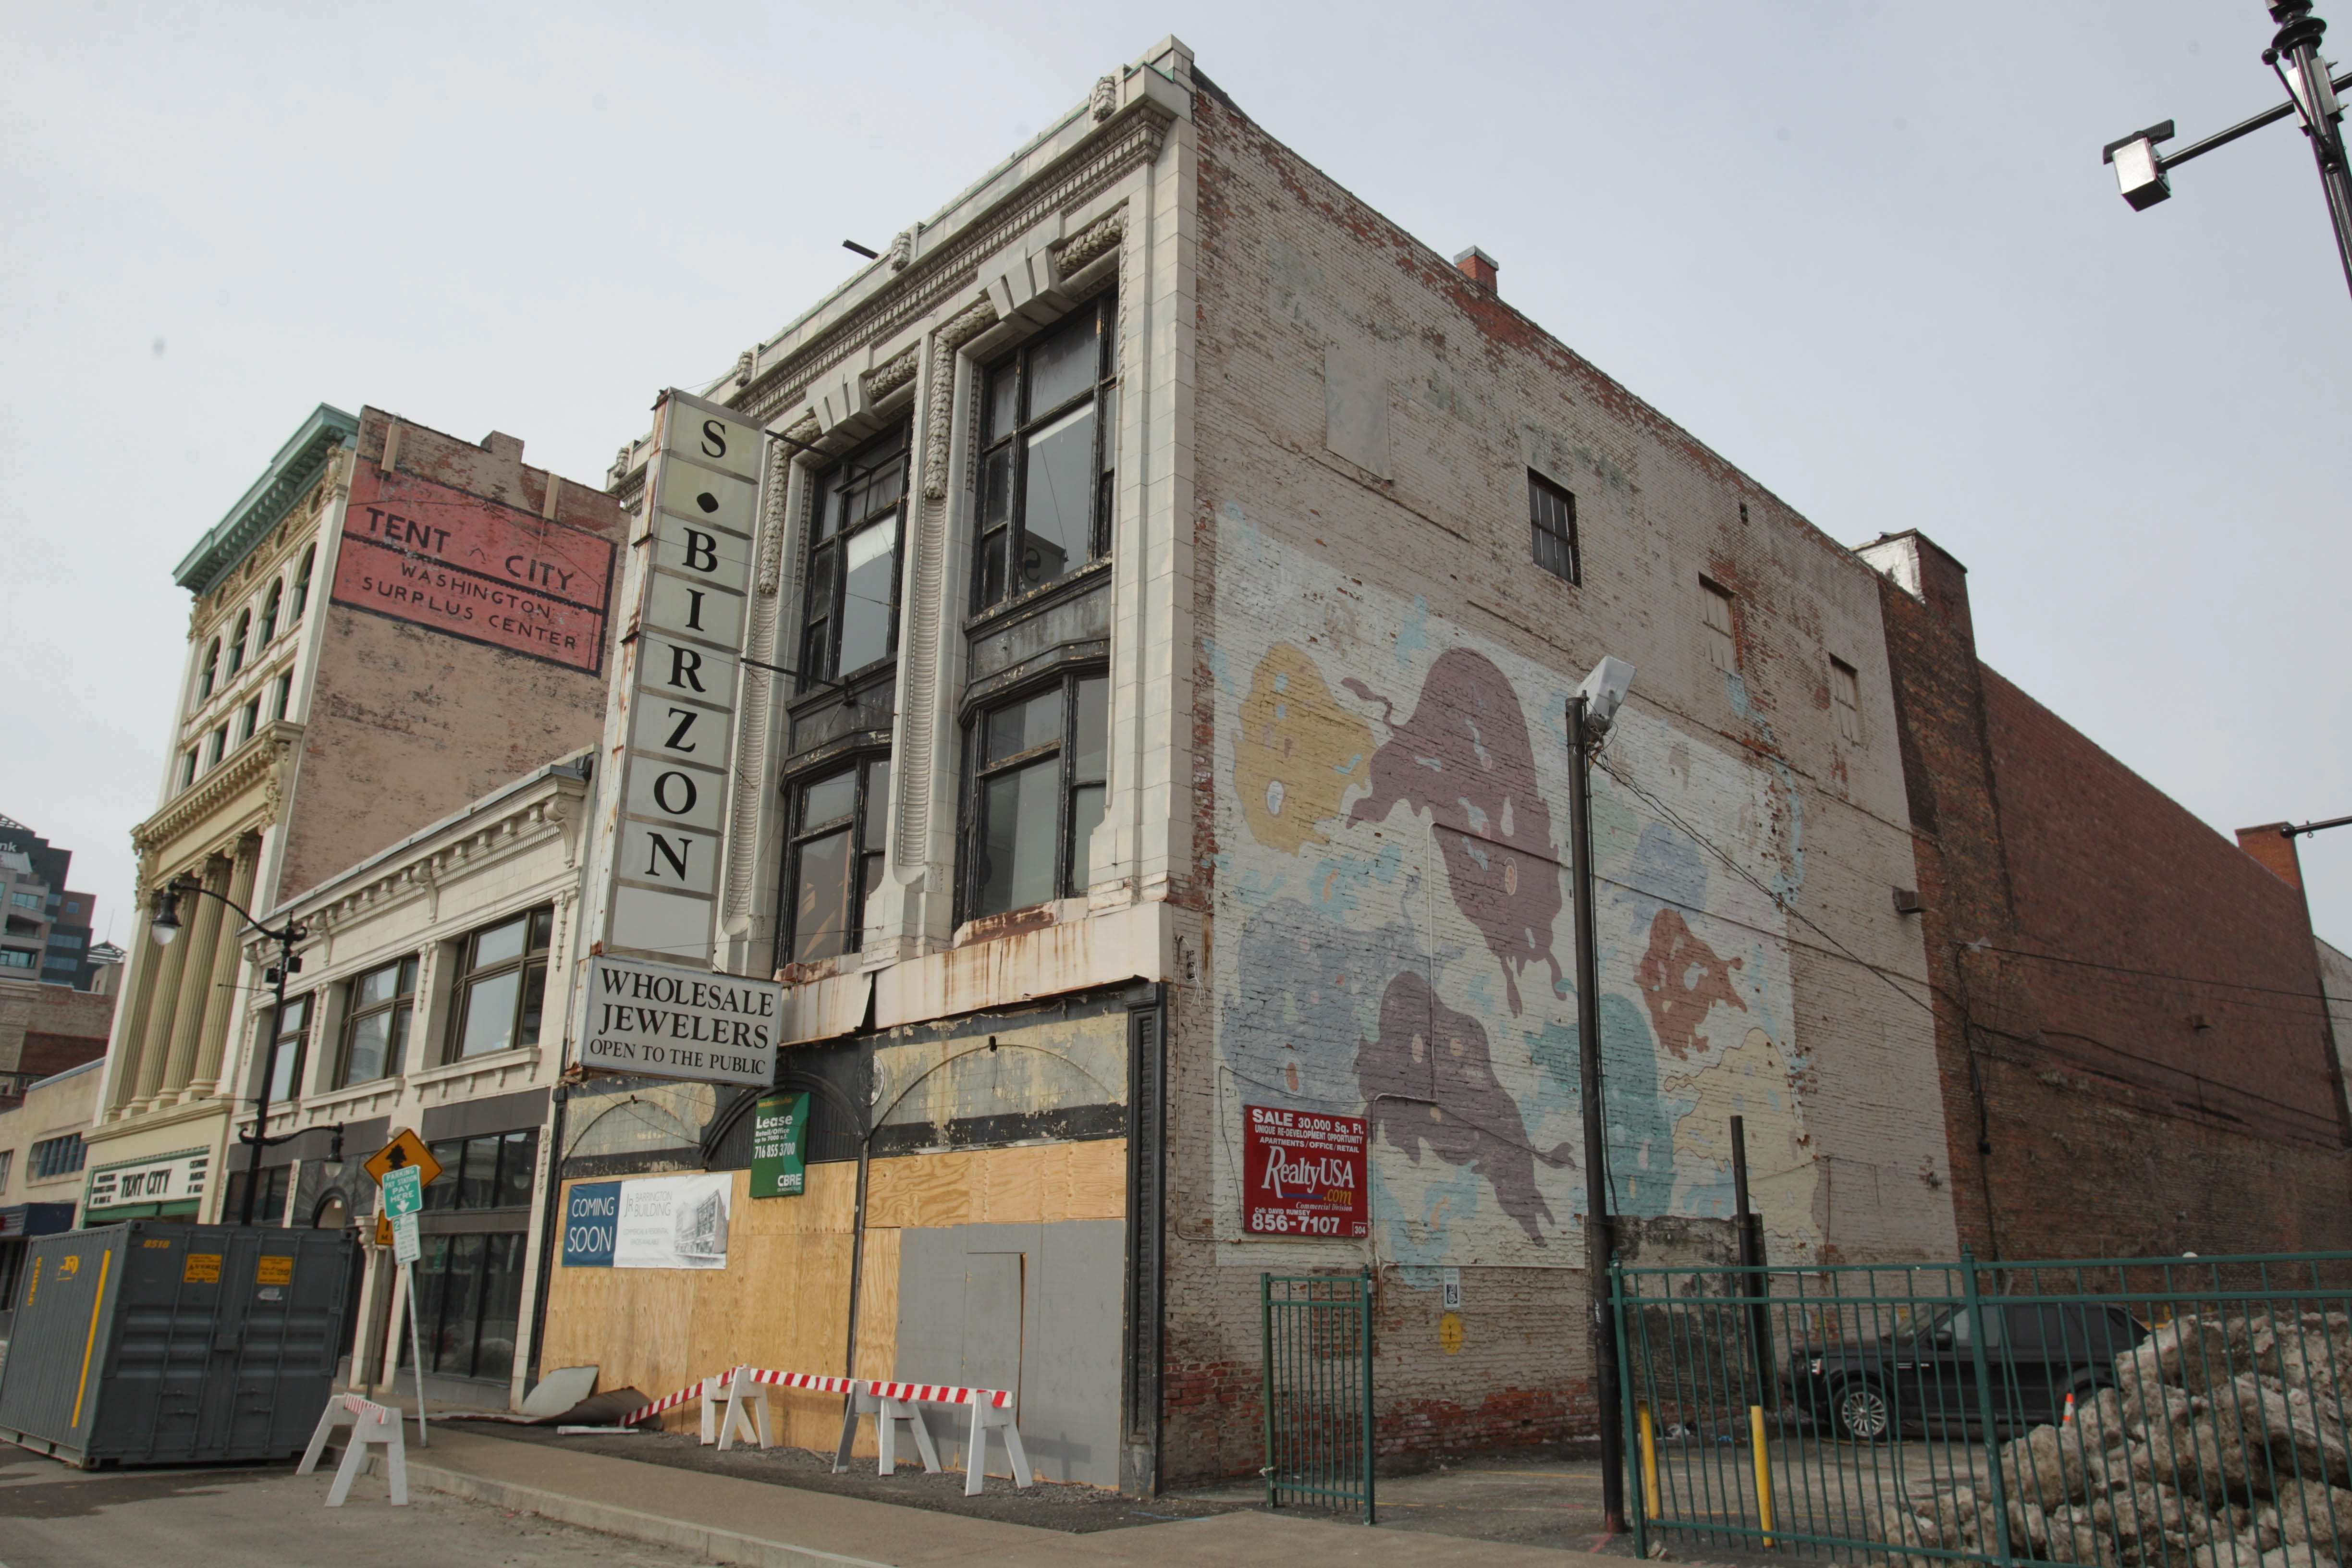 Erie County Clerk Christopher Jacobs and Paul Kolkmeyer have purchased the former Birzon building at 686 Main St.